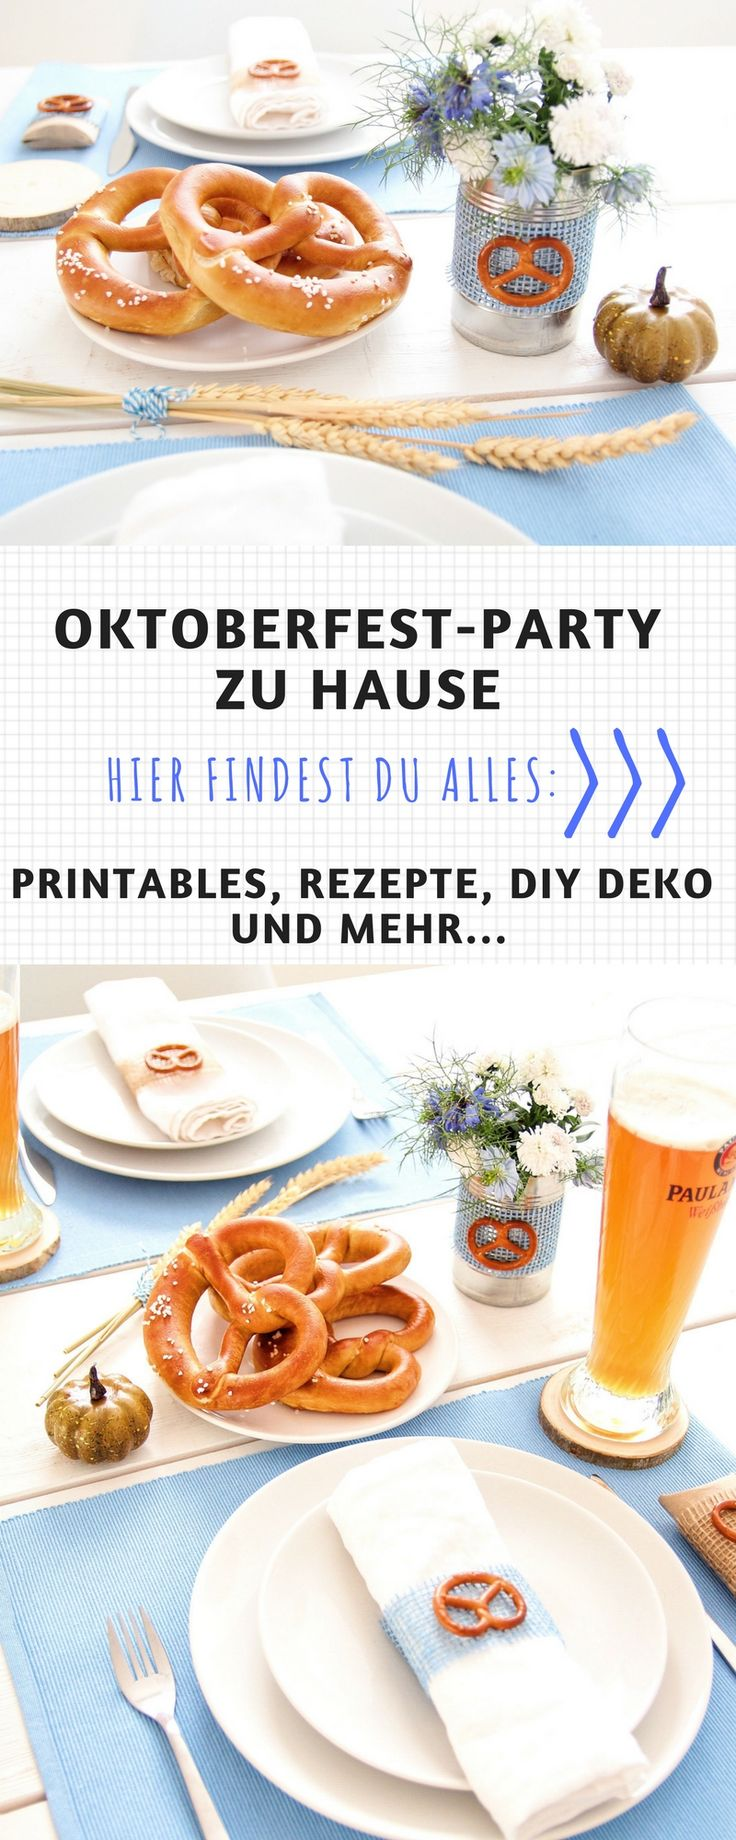 die besten 25 oktoberfest deko ideen auf pinterest oktoberfest party deko bayrische deko und. Black Bedroom Furniture Sets. Home Design Ideas